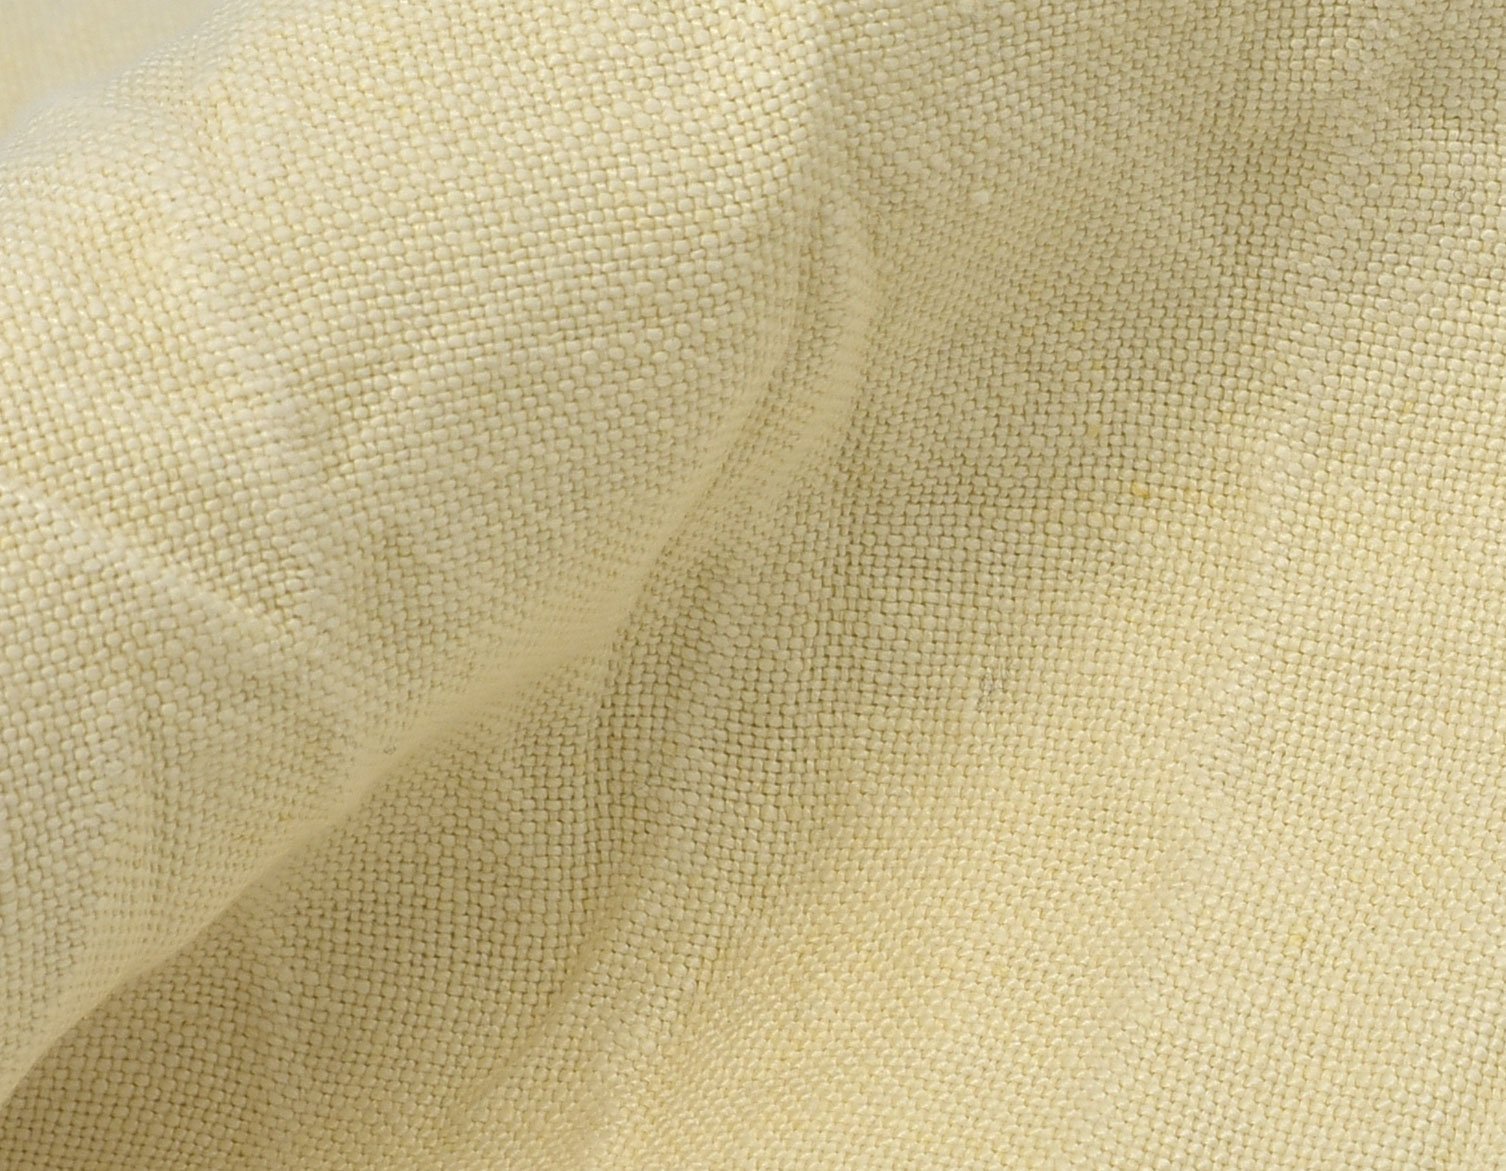 Canapone linen detail